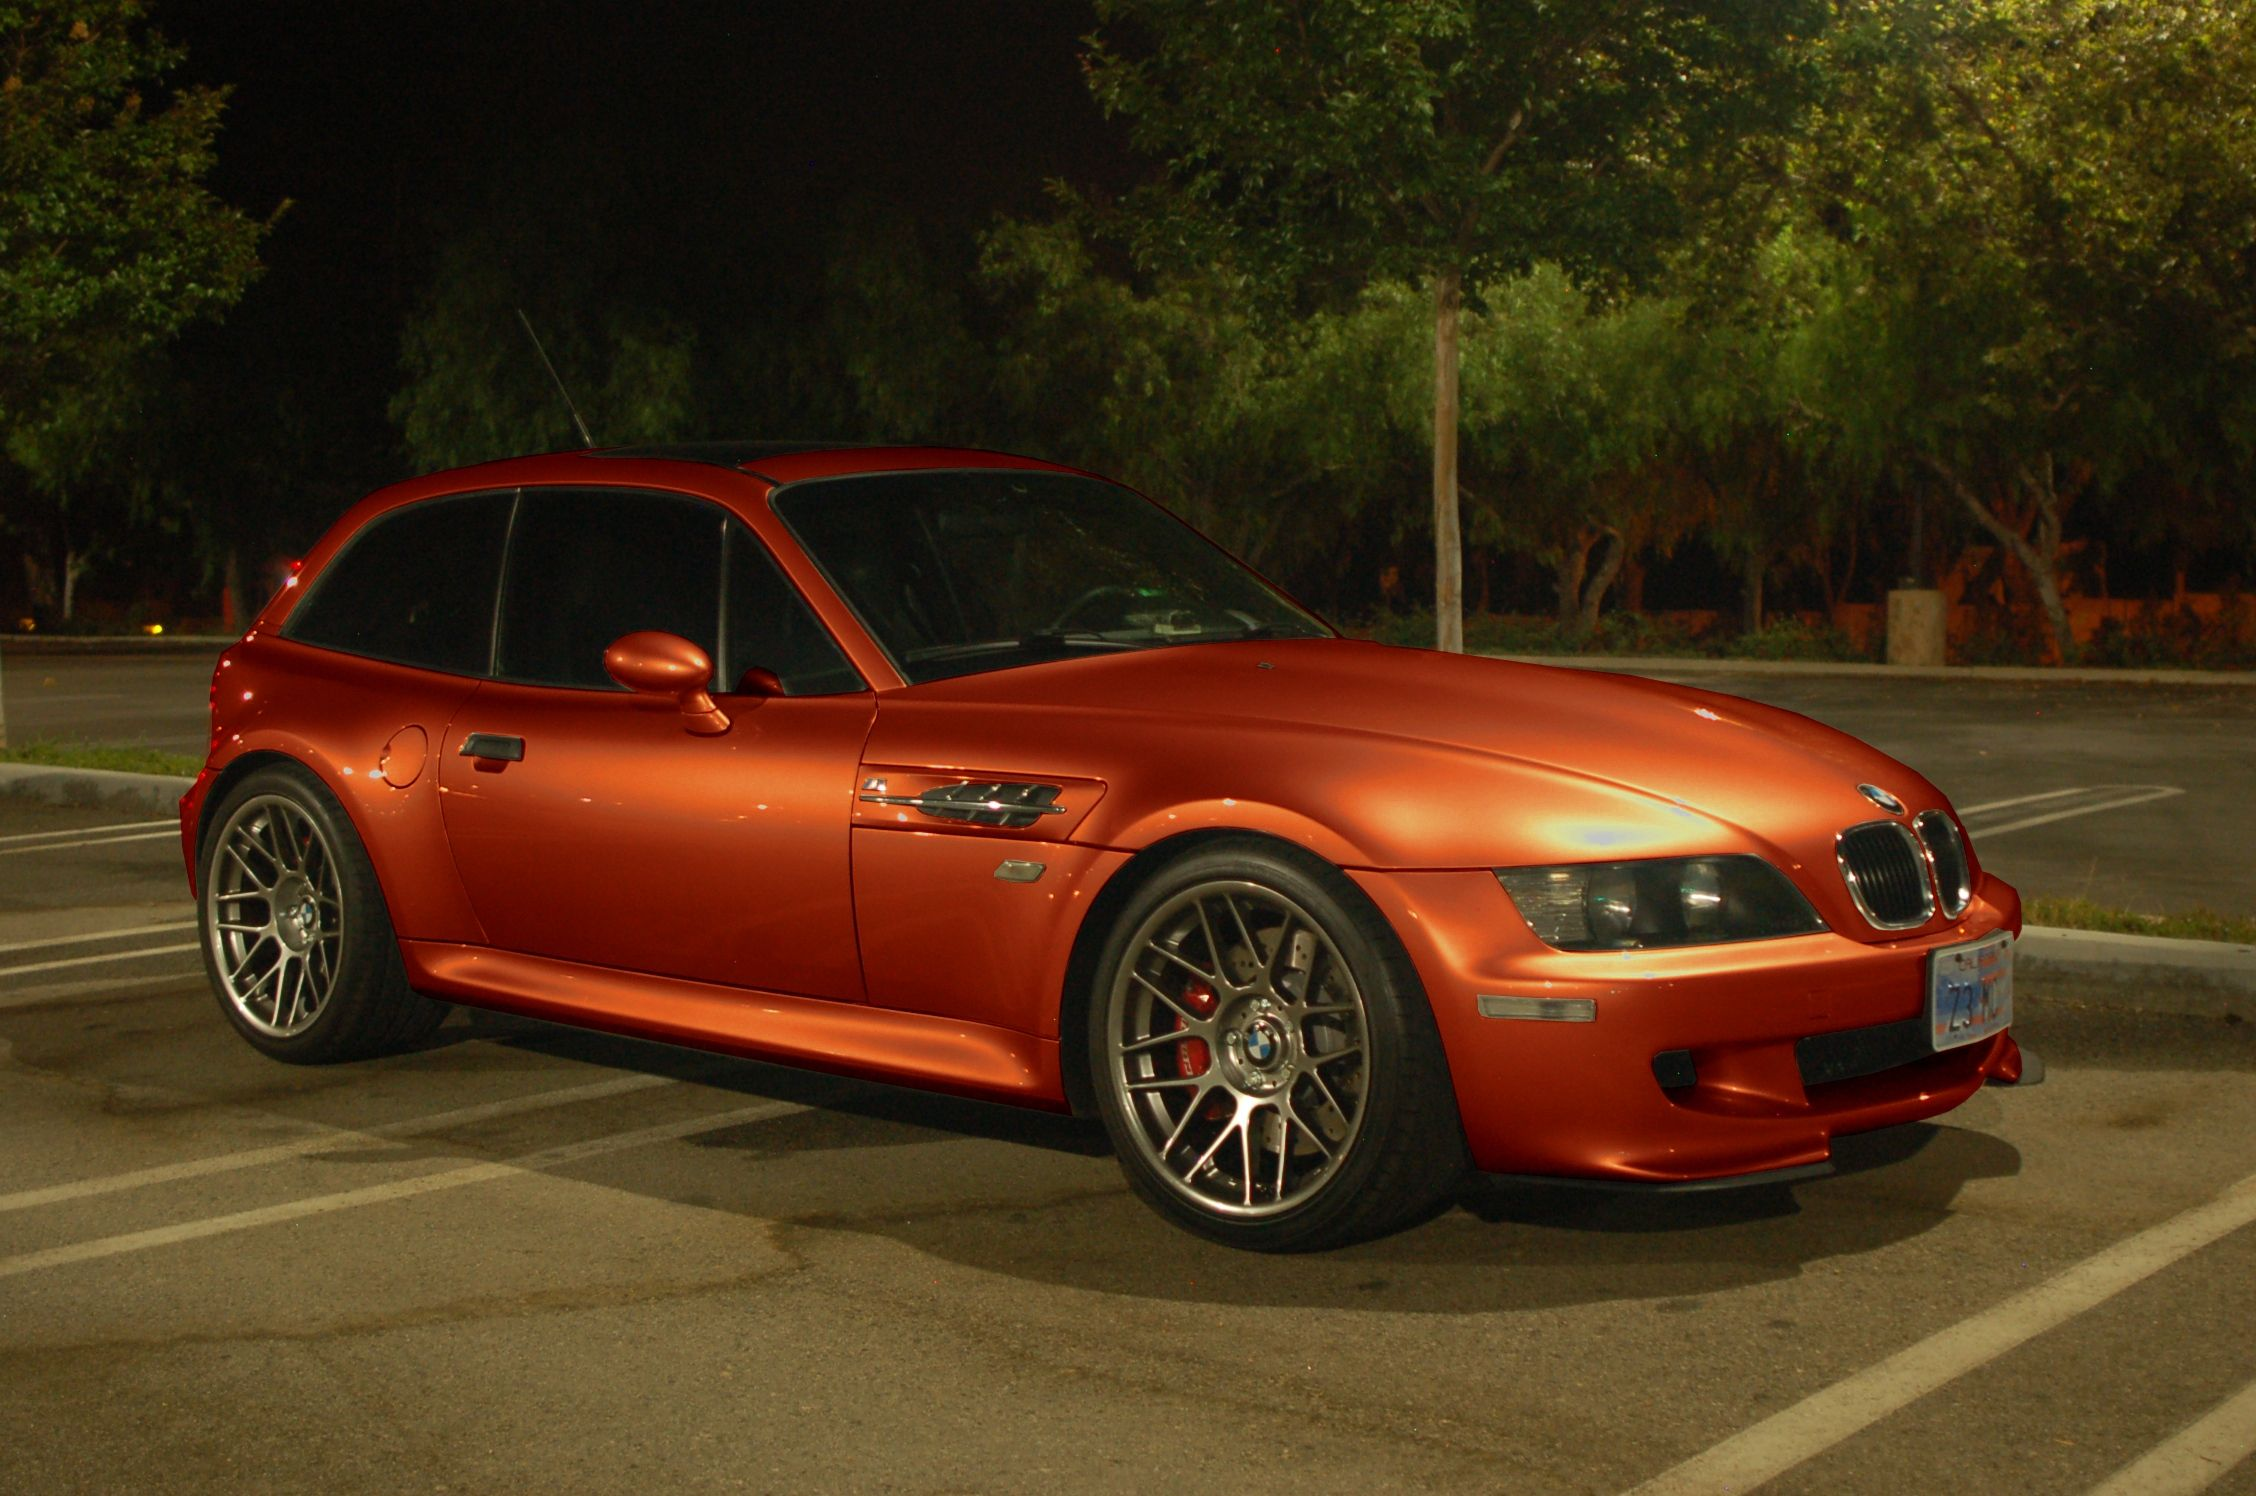 Bmw Z3 Orange Bmw Z3 Orange Bmw Roadsters Coupes Pinterest